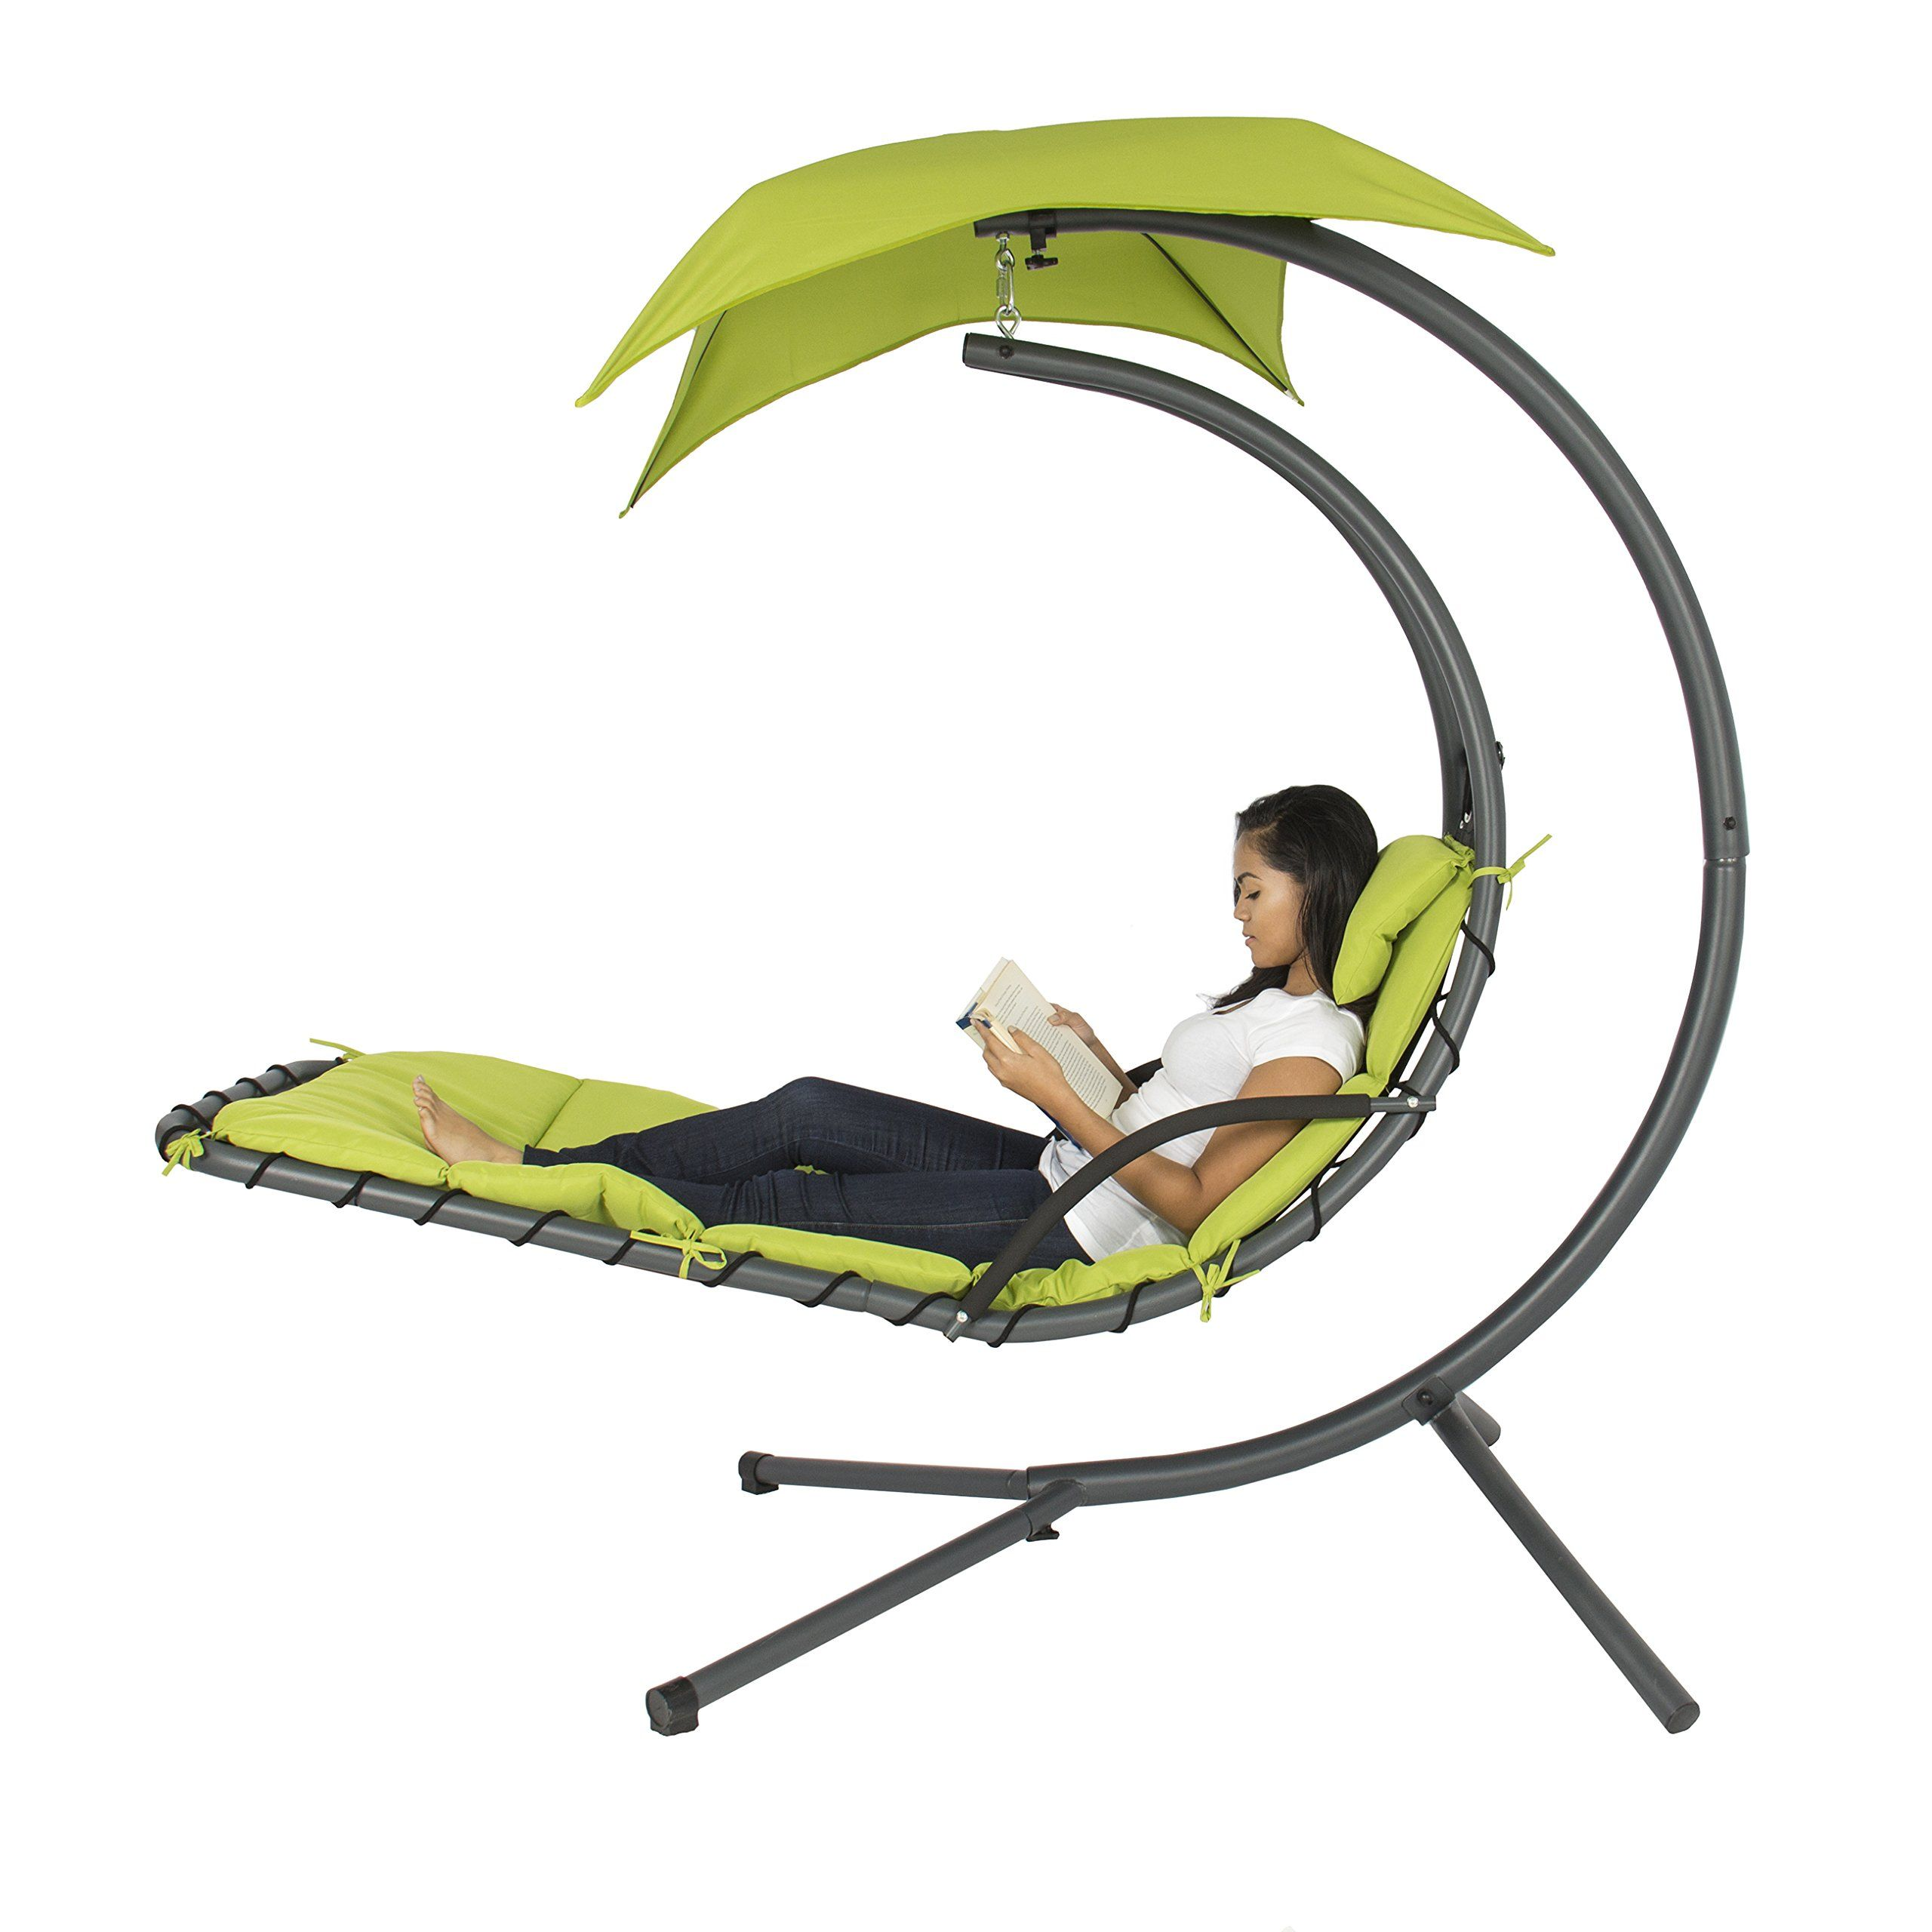 Best choice products hanging chaise lounger chair arc stand air